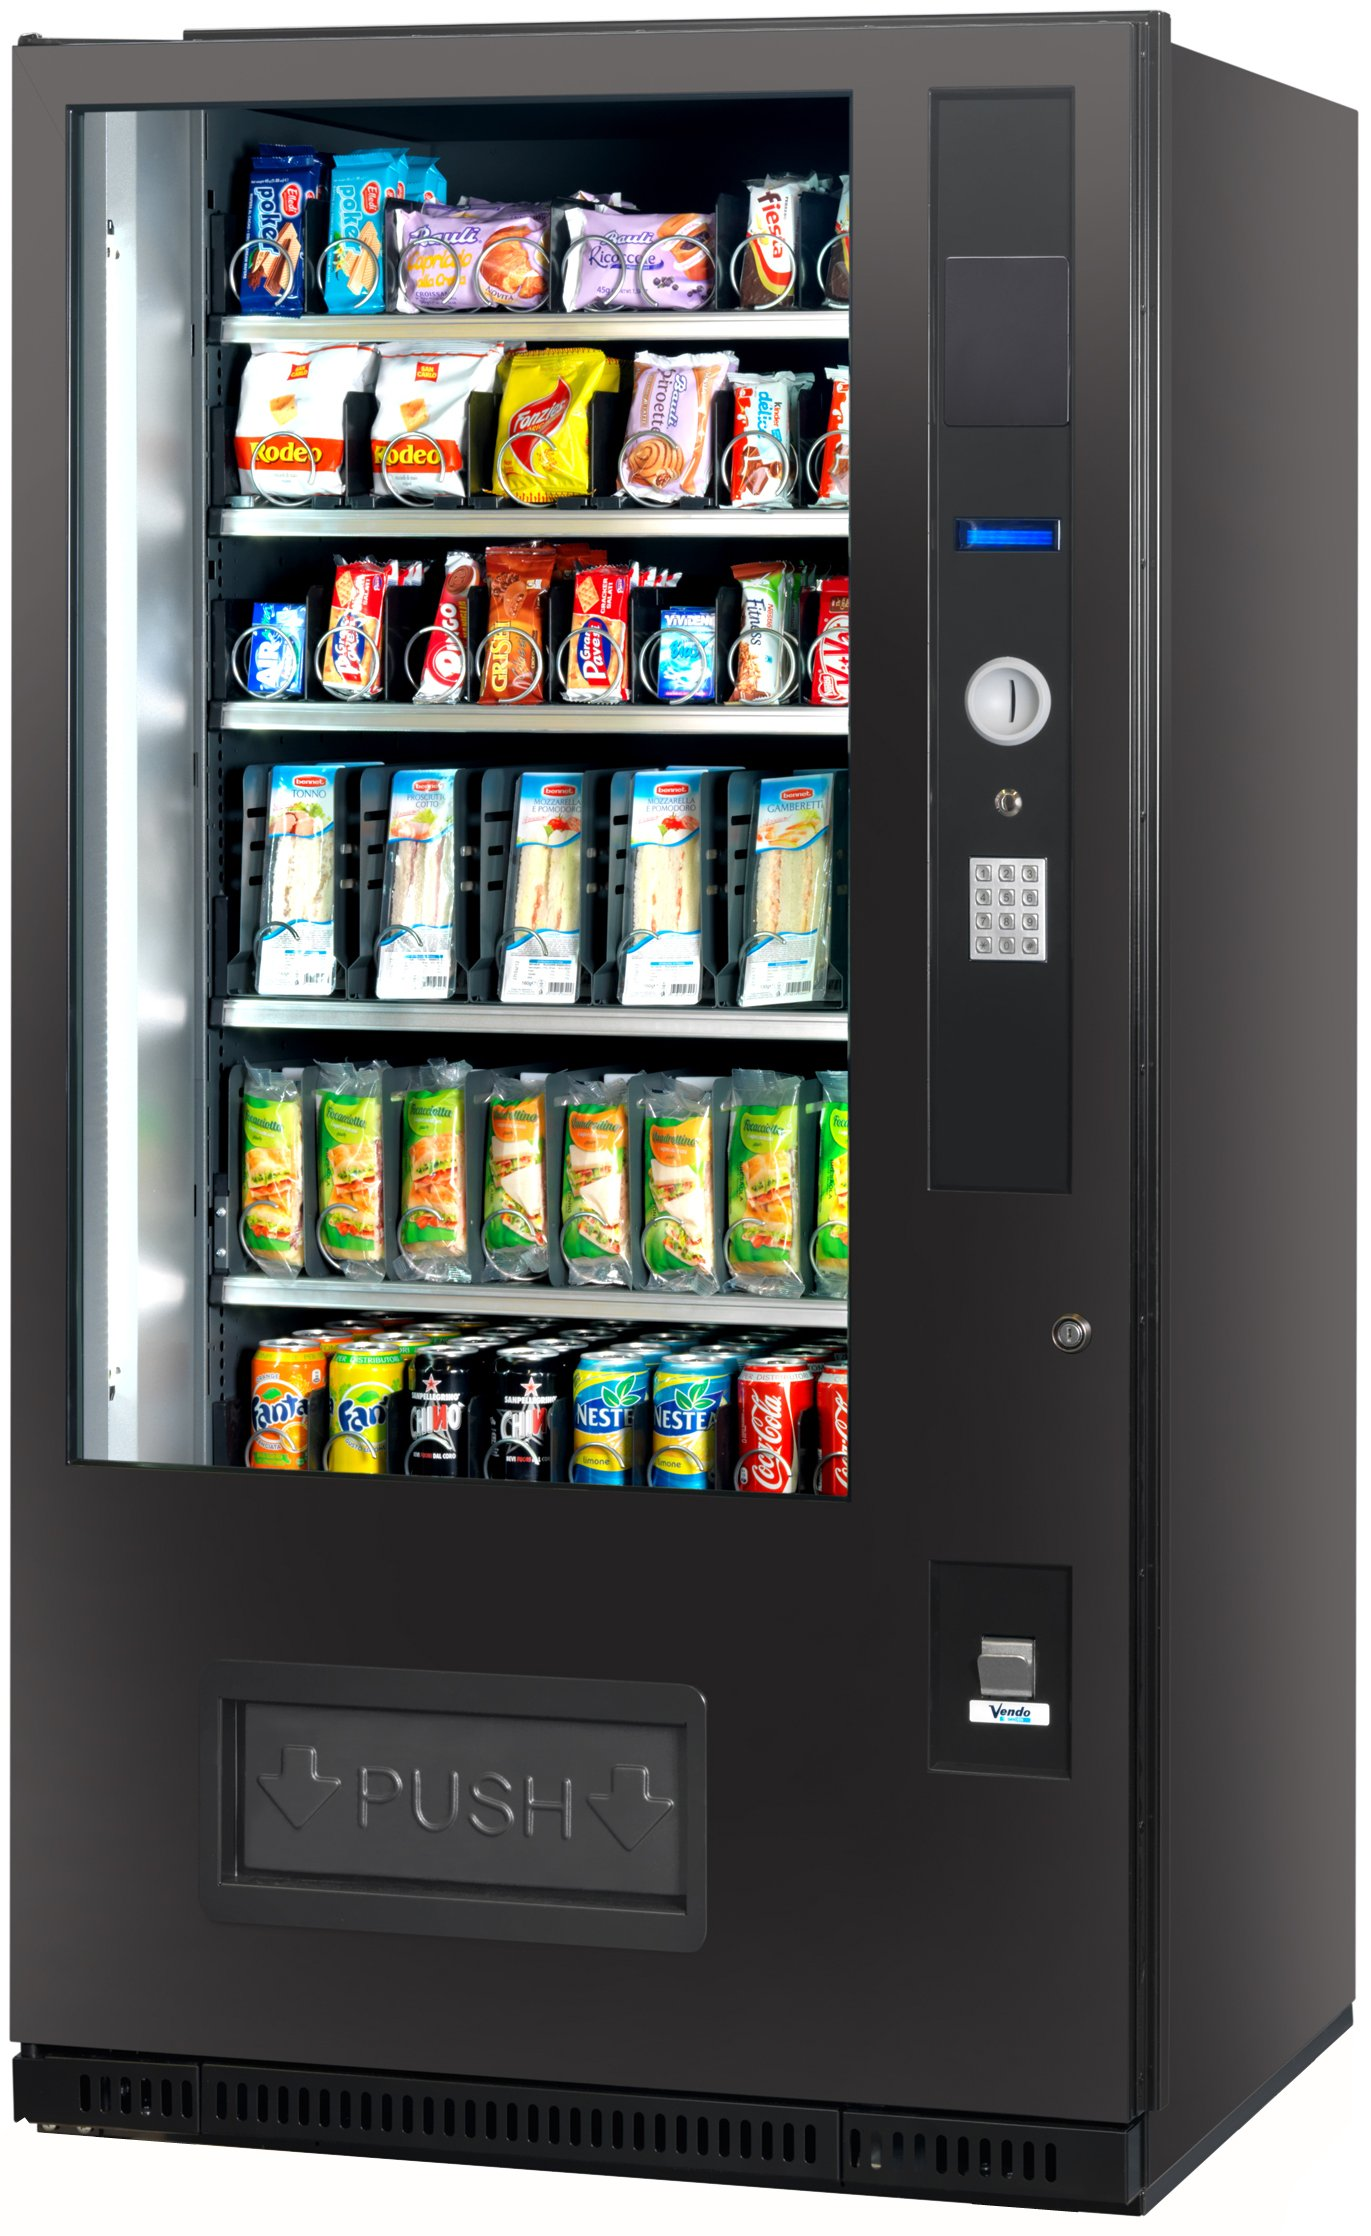 G-Snack Plus 8 Vending Machine